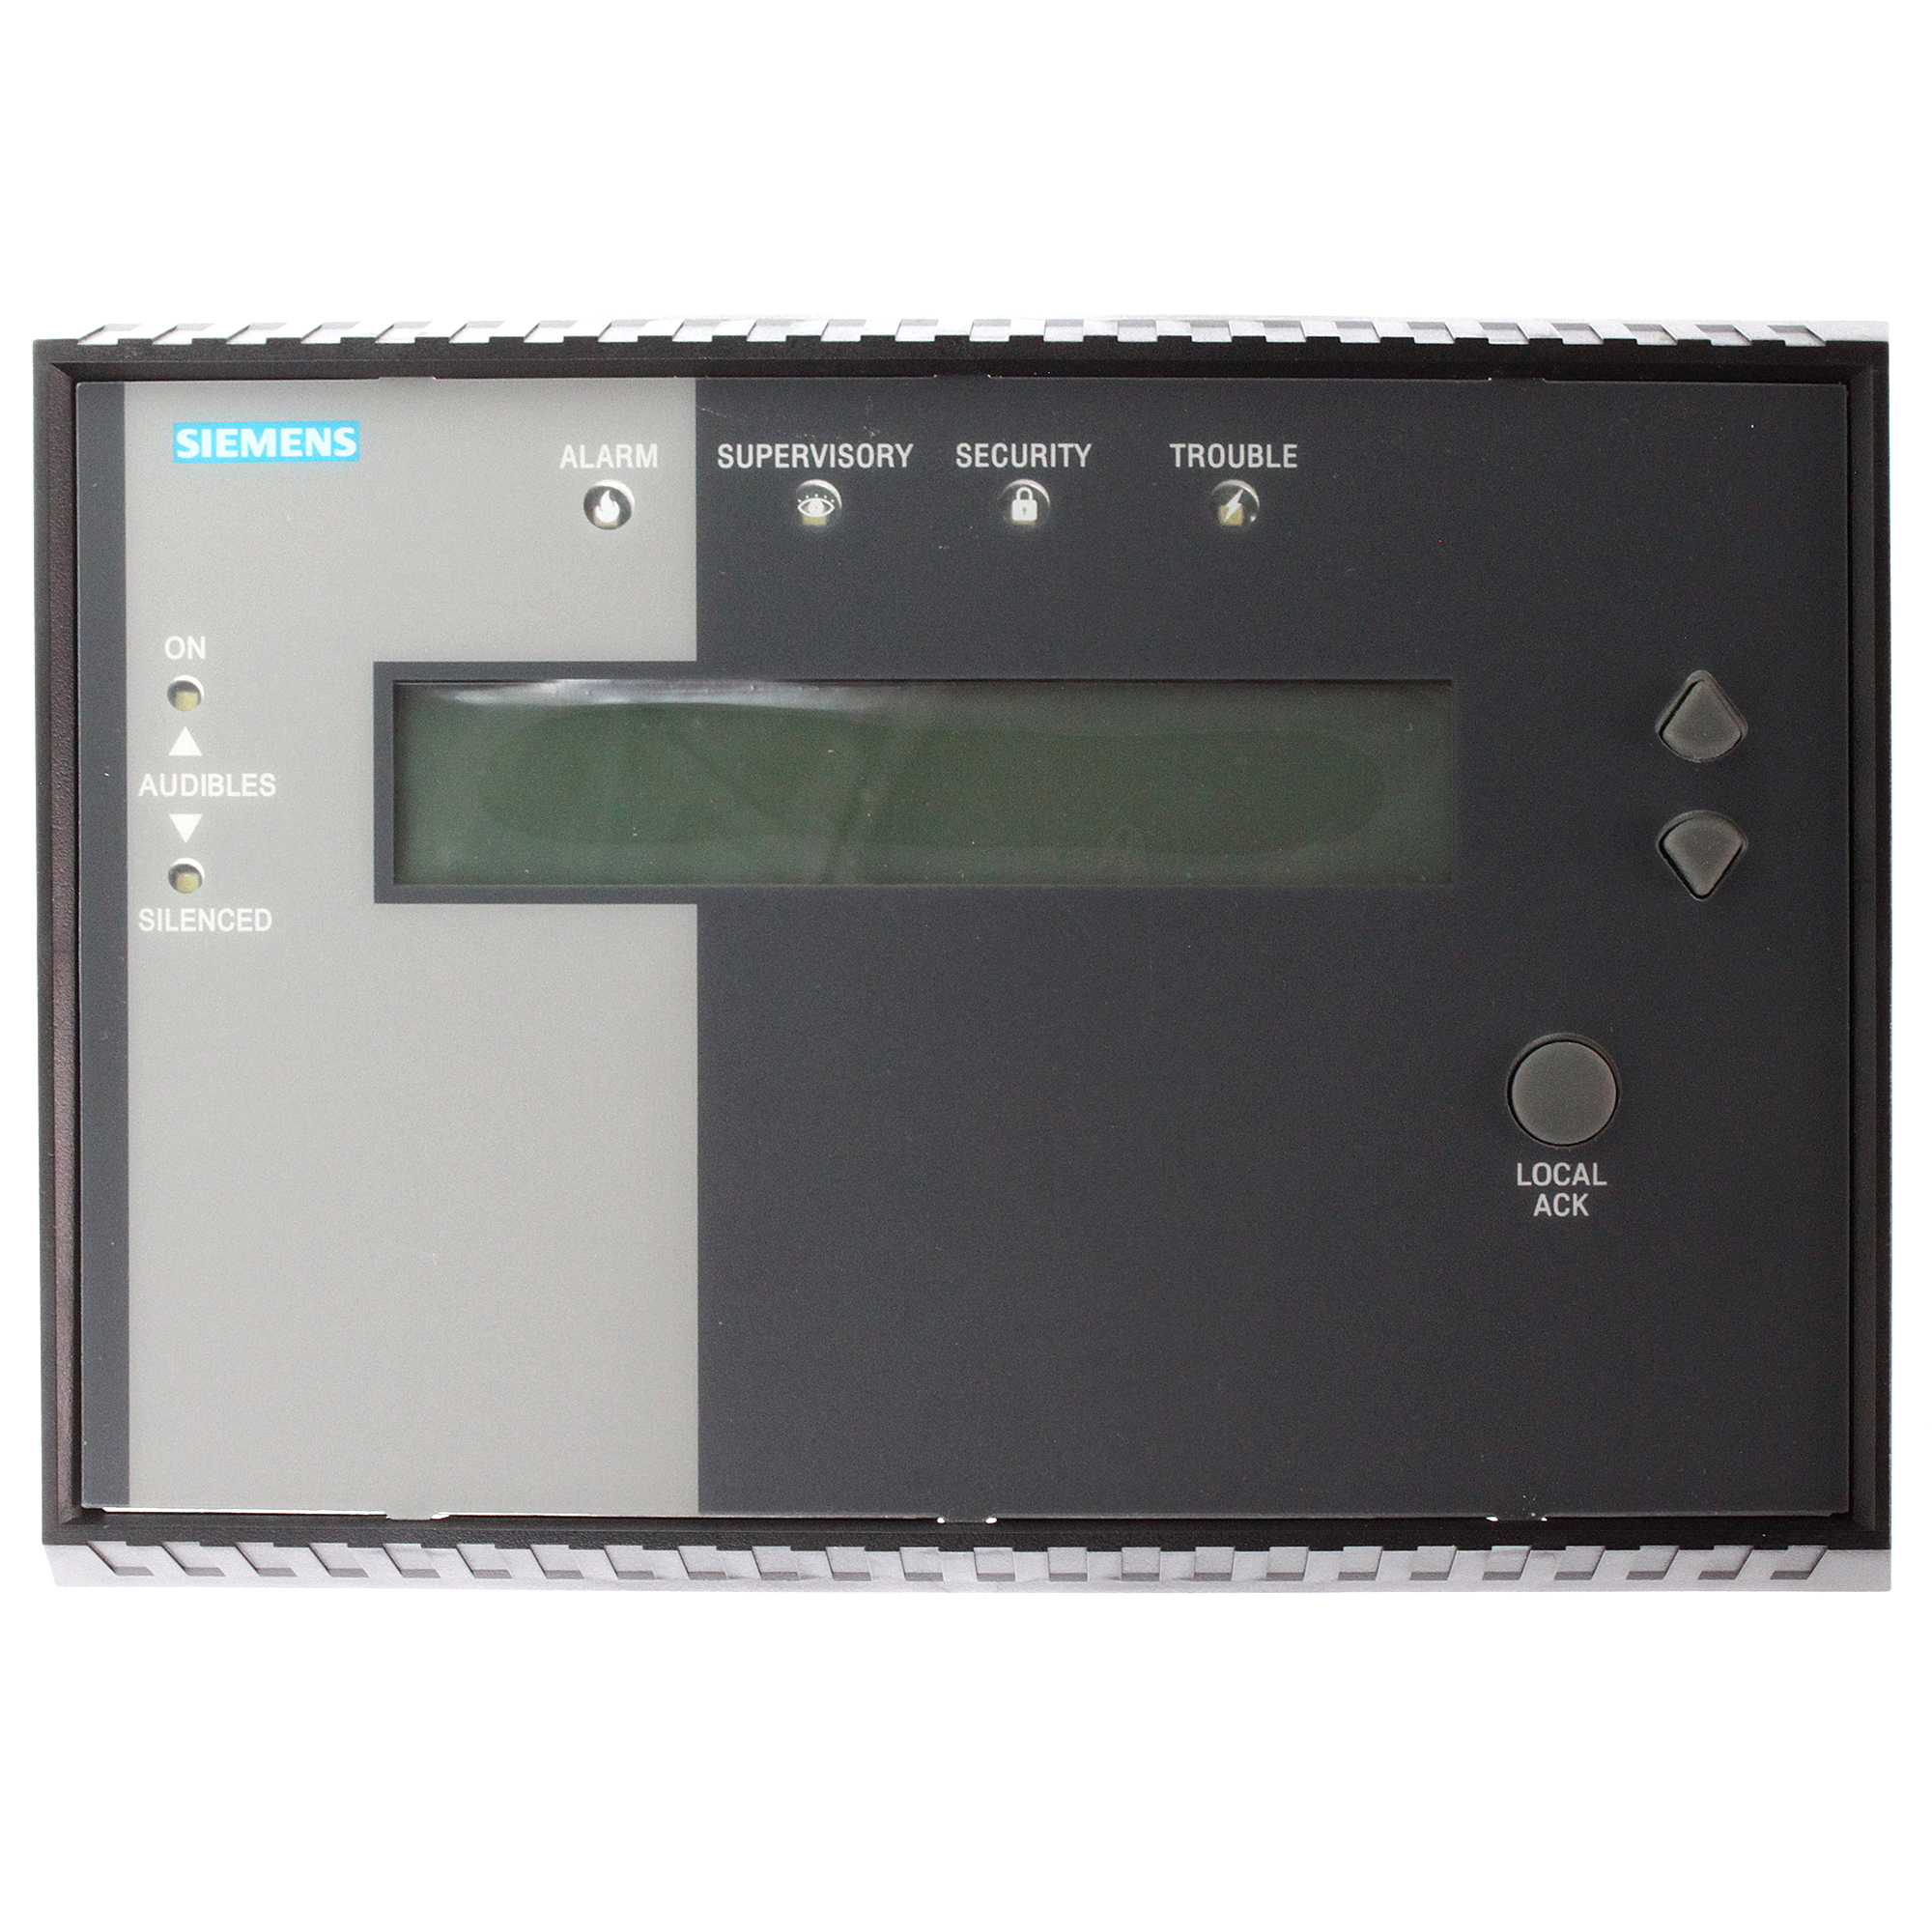 Siemens Building Technologies SSD 500-034170 FF XLS SSD System Status Display by Siemens Group